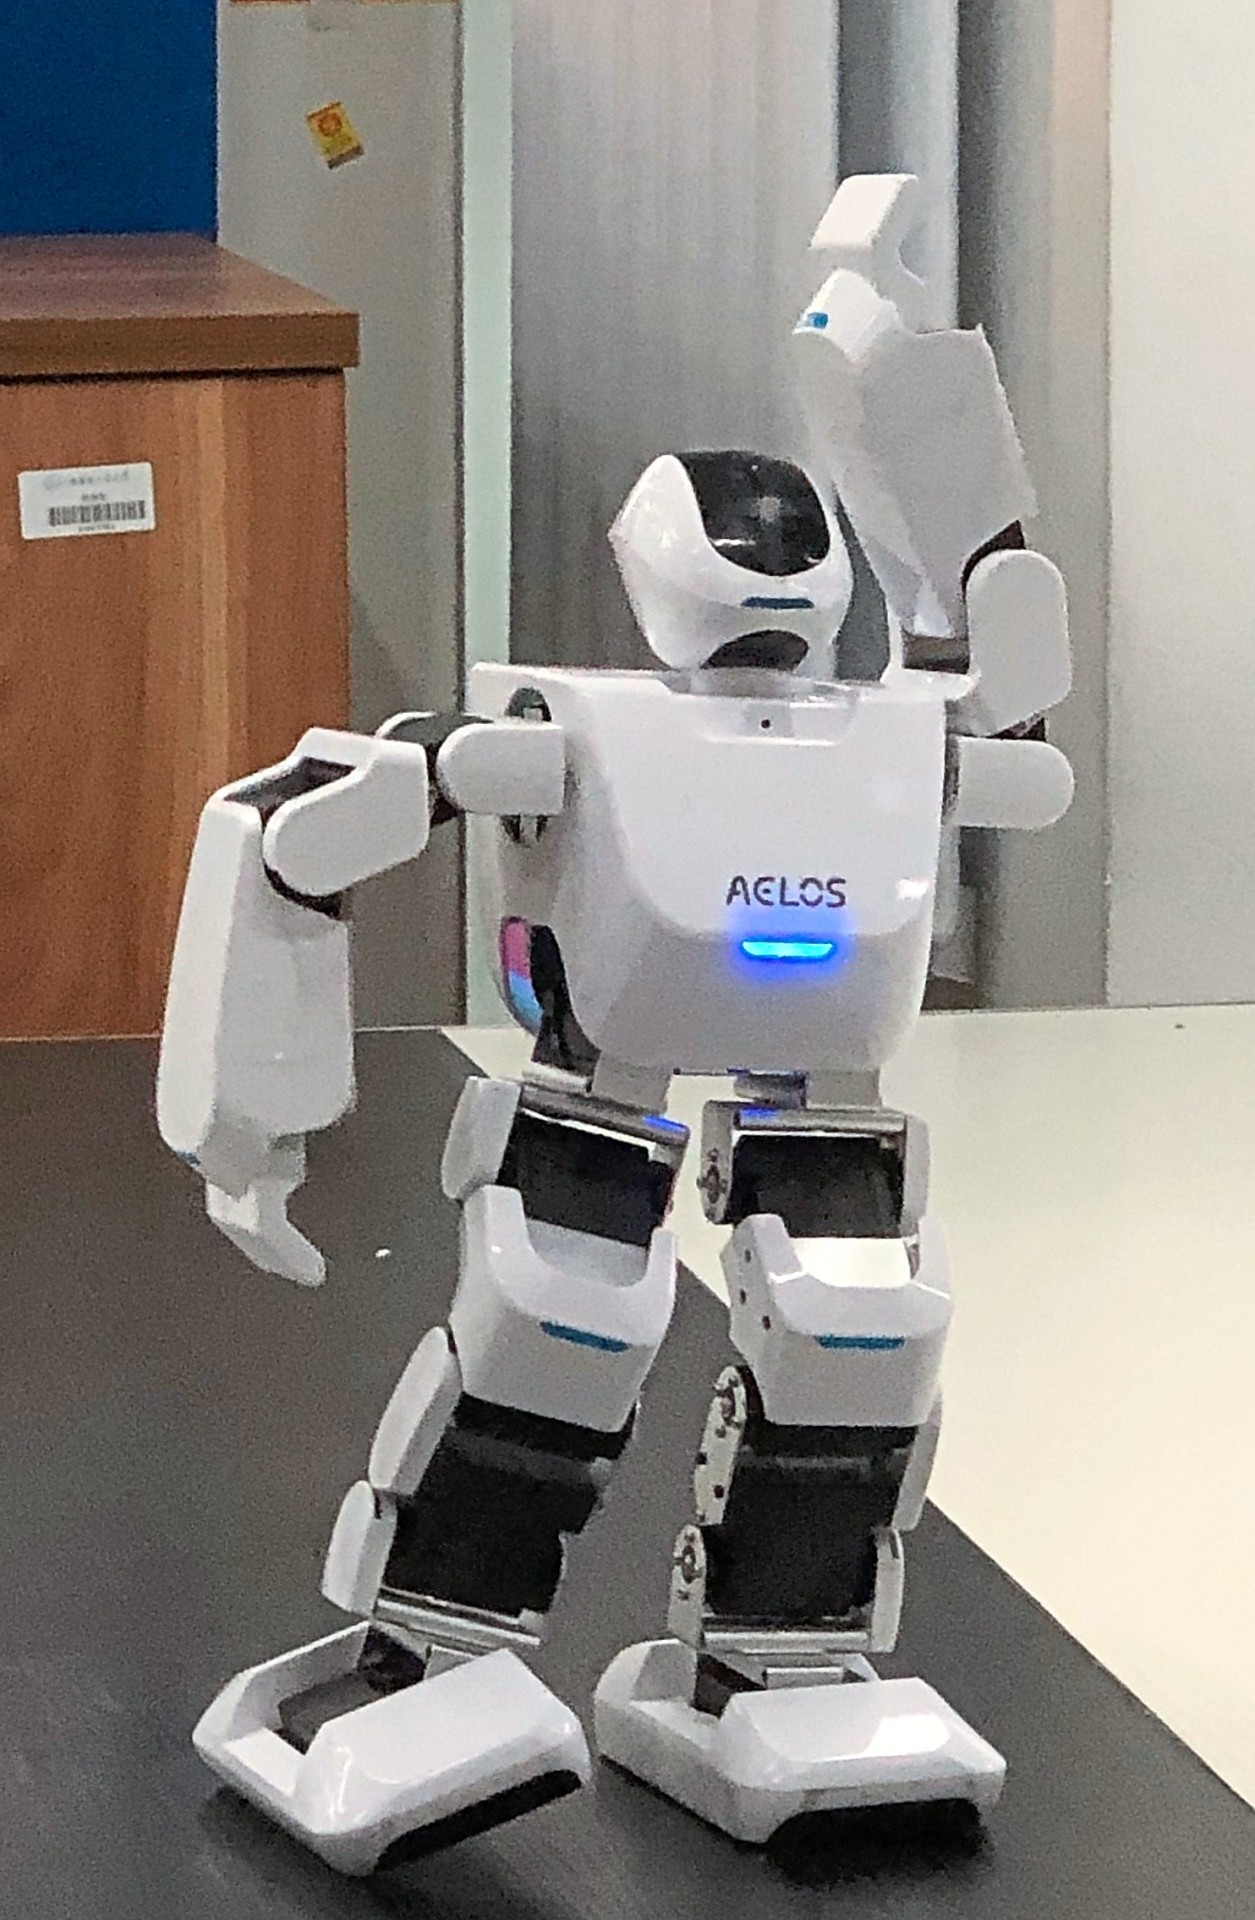 A robot 'performing' for visitors at Harbin Institute of Technology in Harbin, Heilongjiang, China.